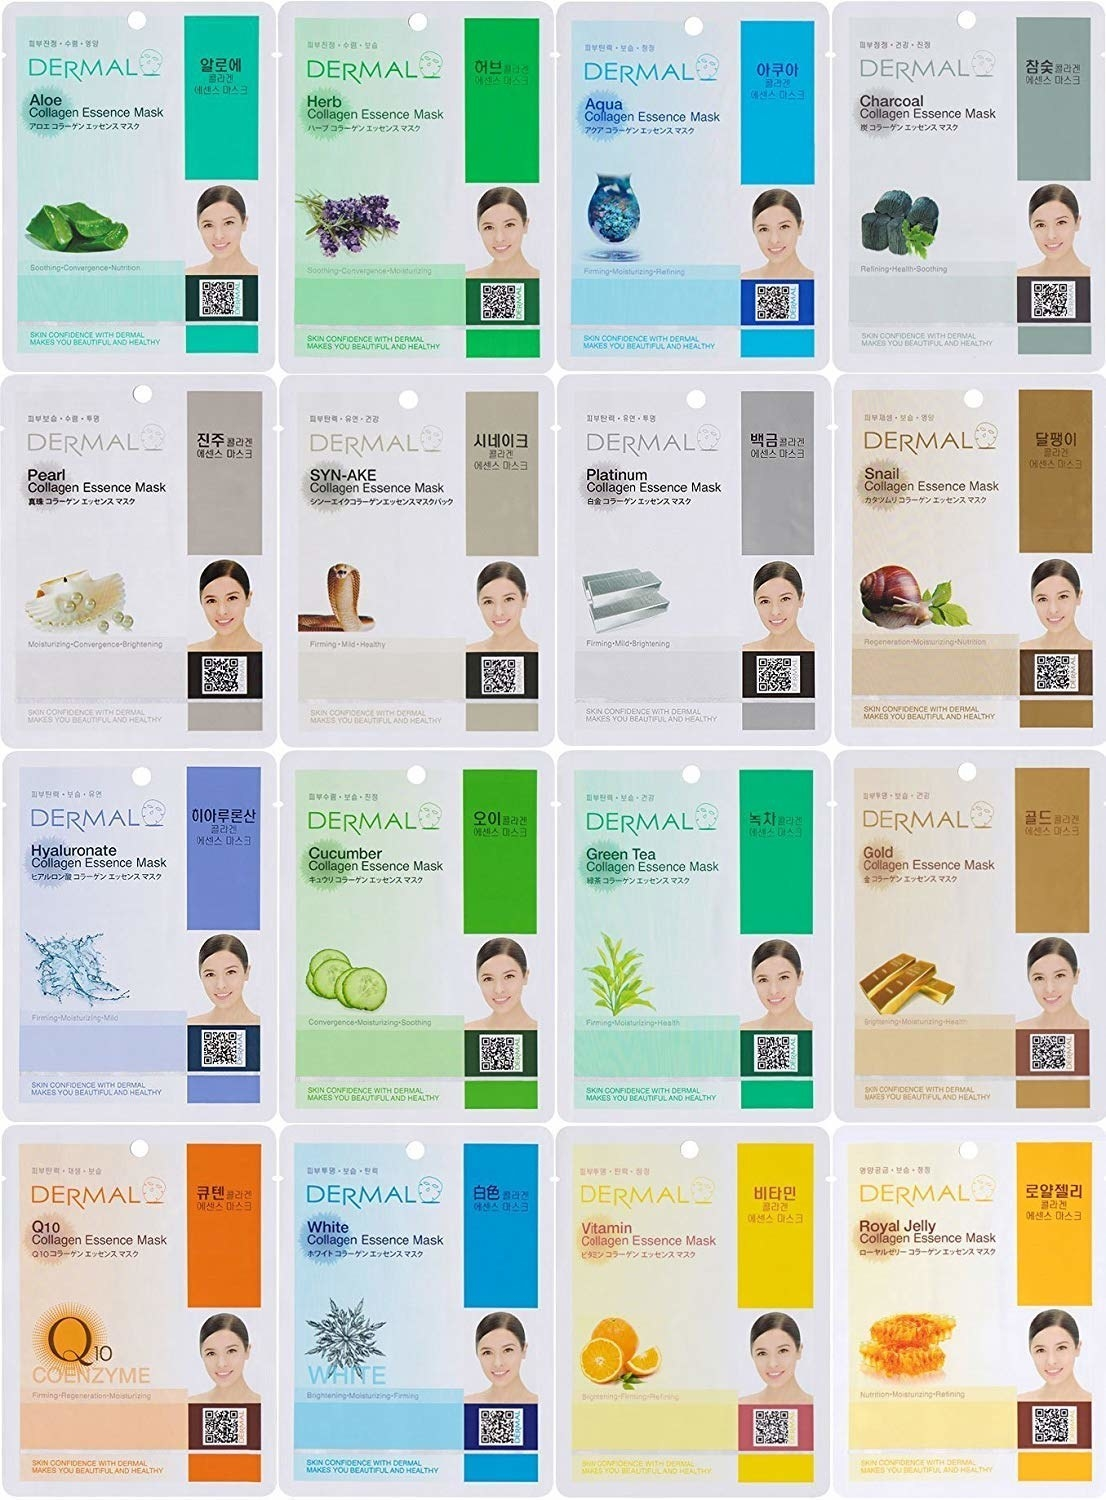 16 of the different varieties of masks